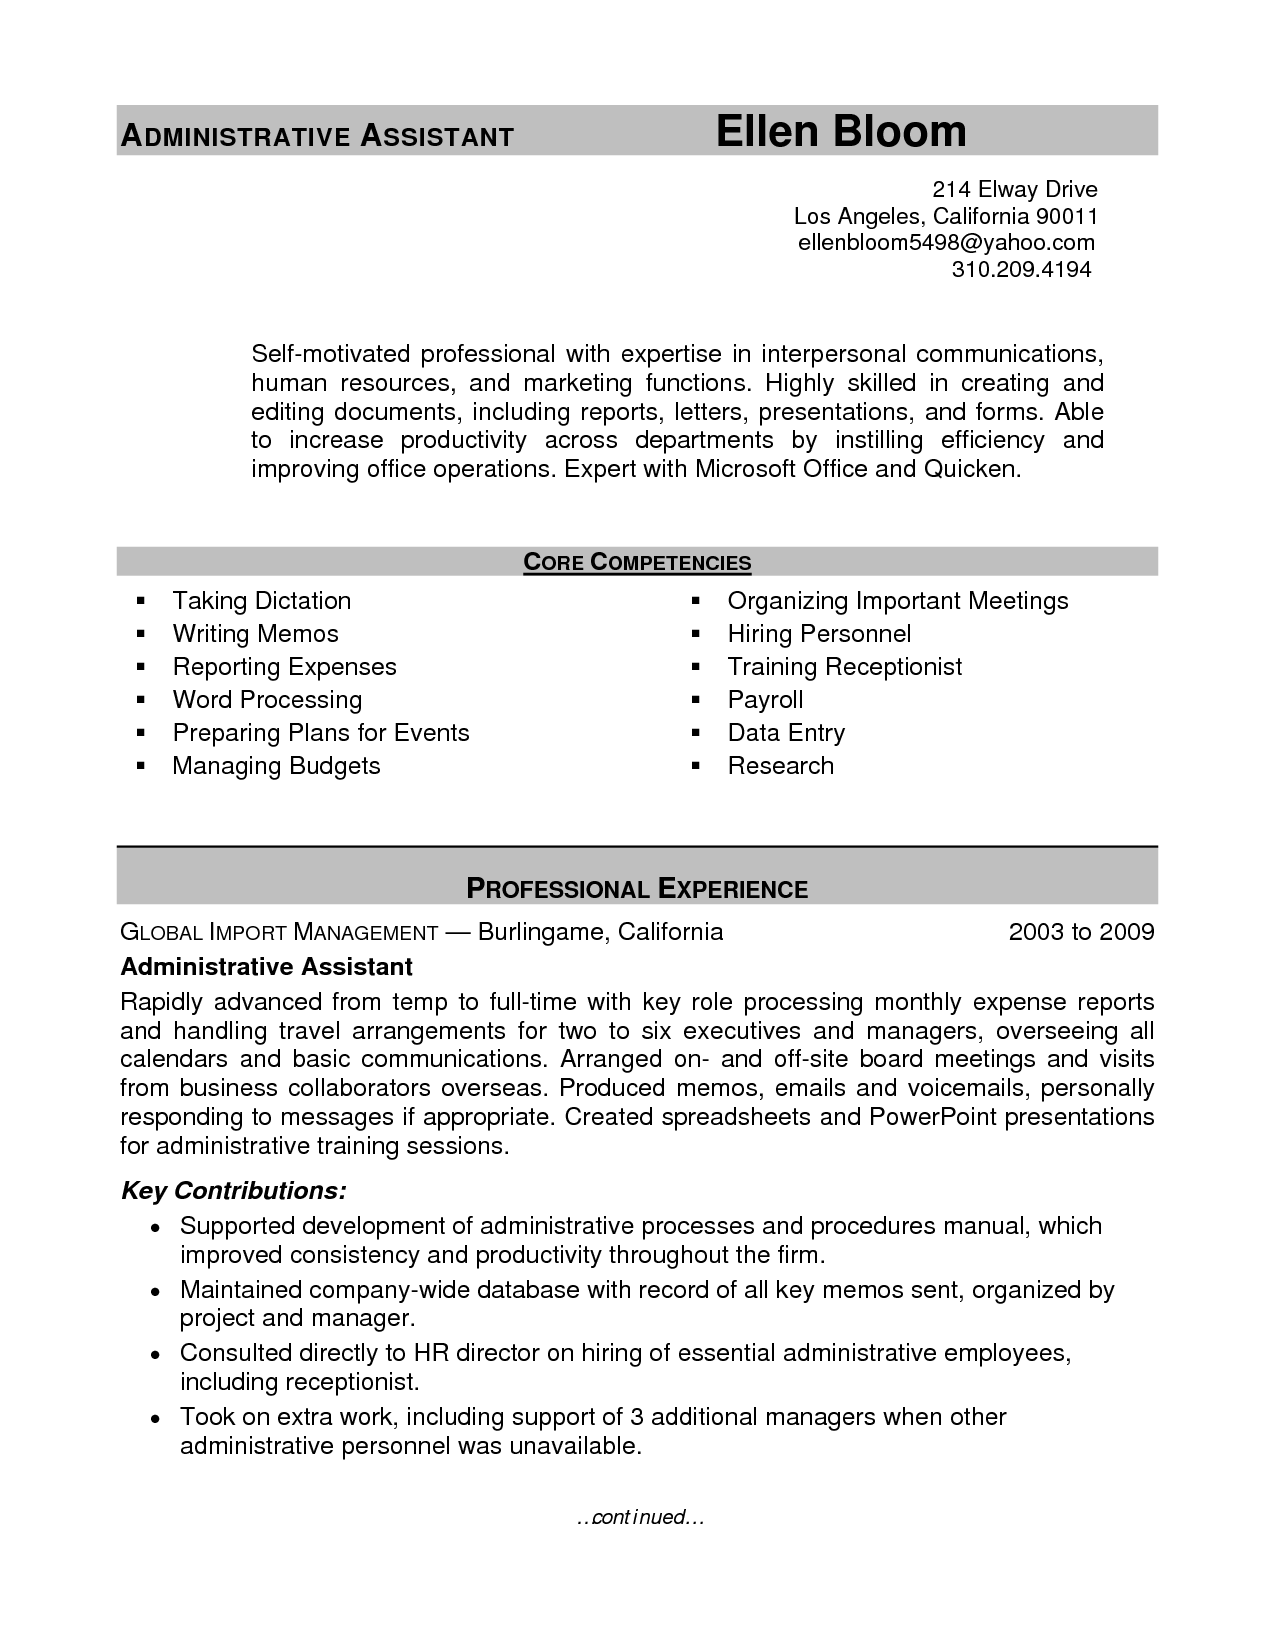 17 Best images about Resume on Pinterest | Curriculum, Resume cv ...